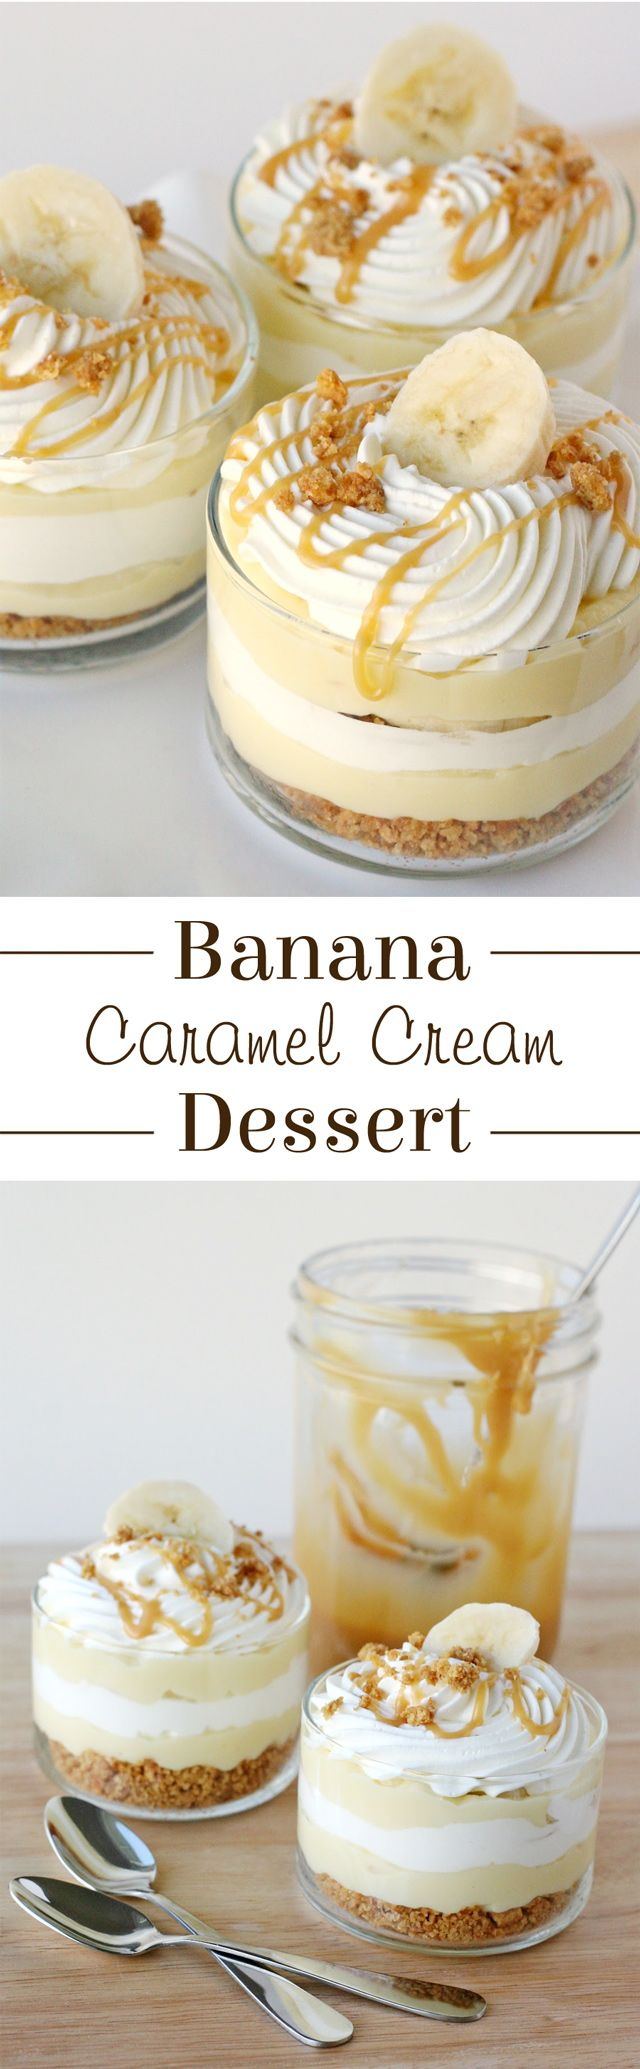 The most AMAZING dessert ever!  Sweet, creamy, crunchy… this Banana Caramel Cream Dessert has it all!